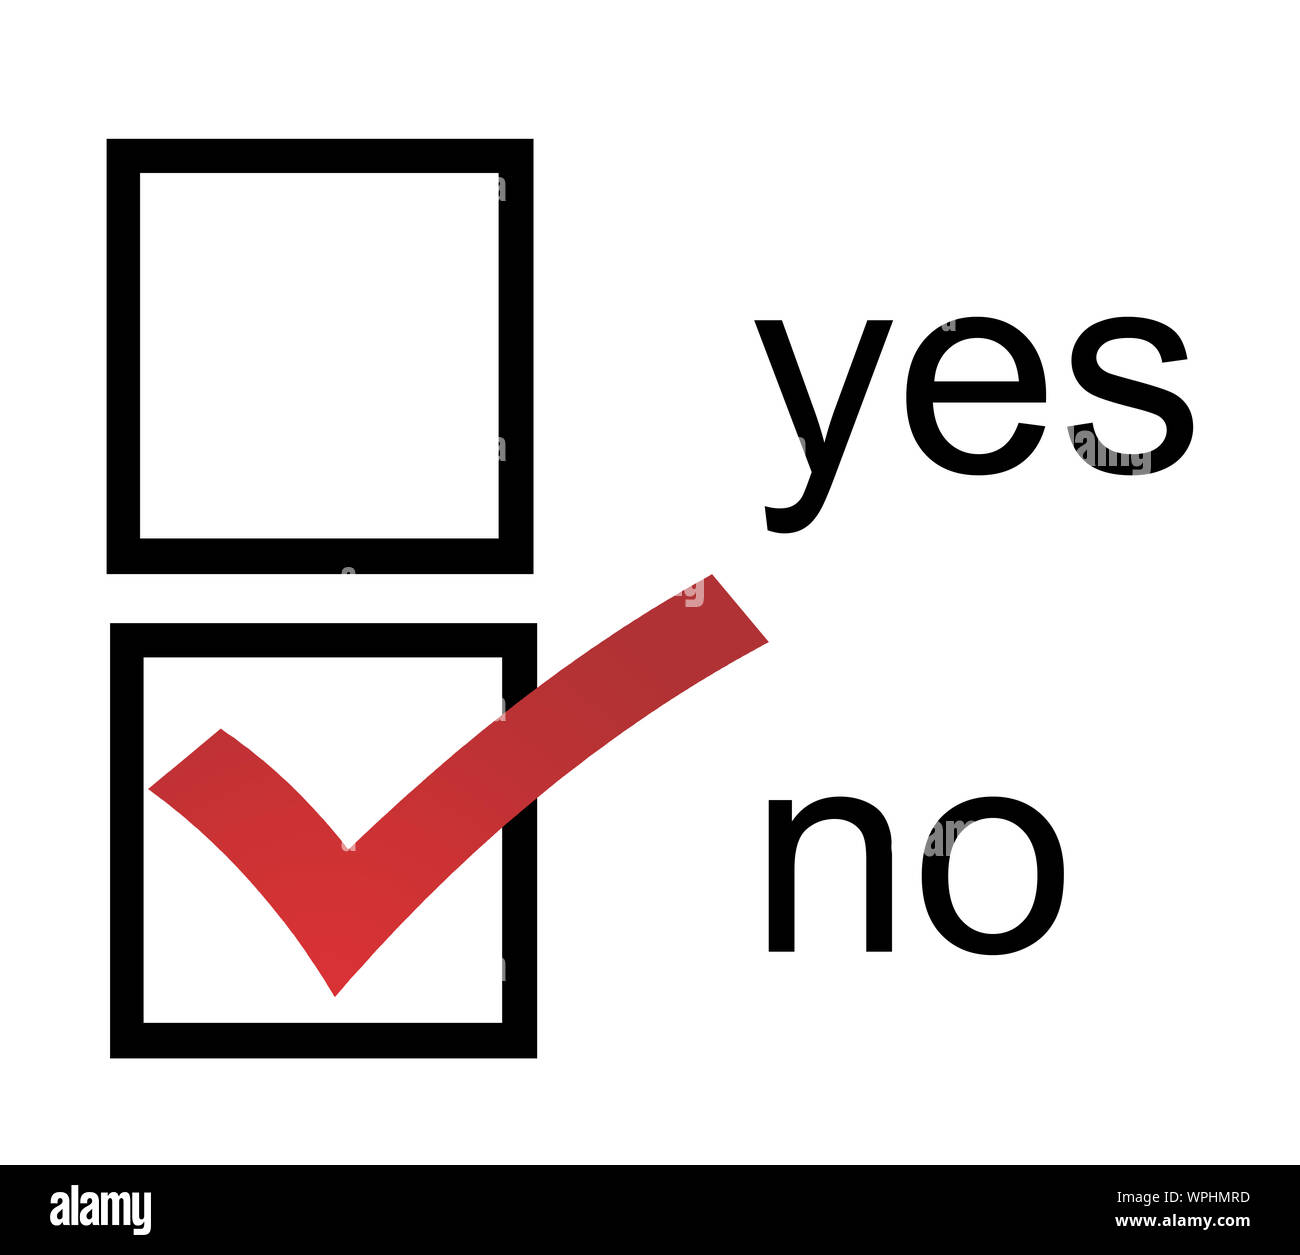 Yes And No Check Boxes With Check Mark In The Yes Stock ... |Check Box Yes